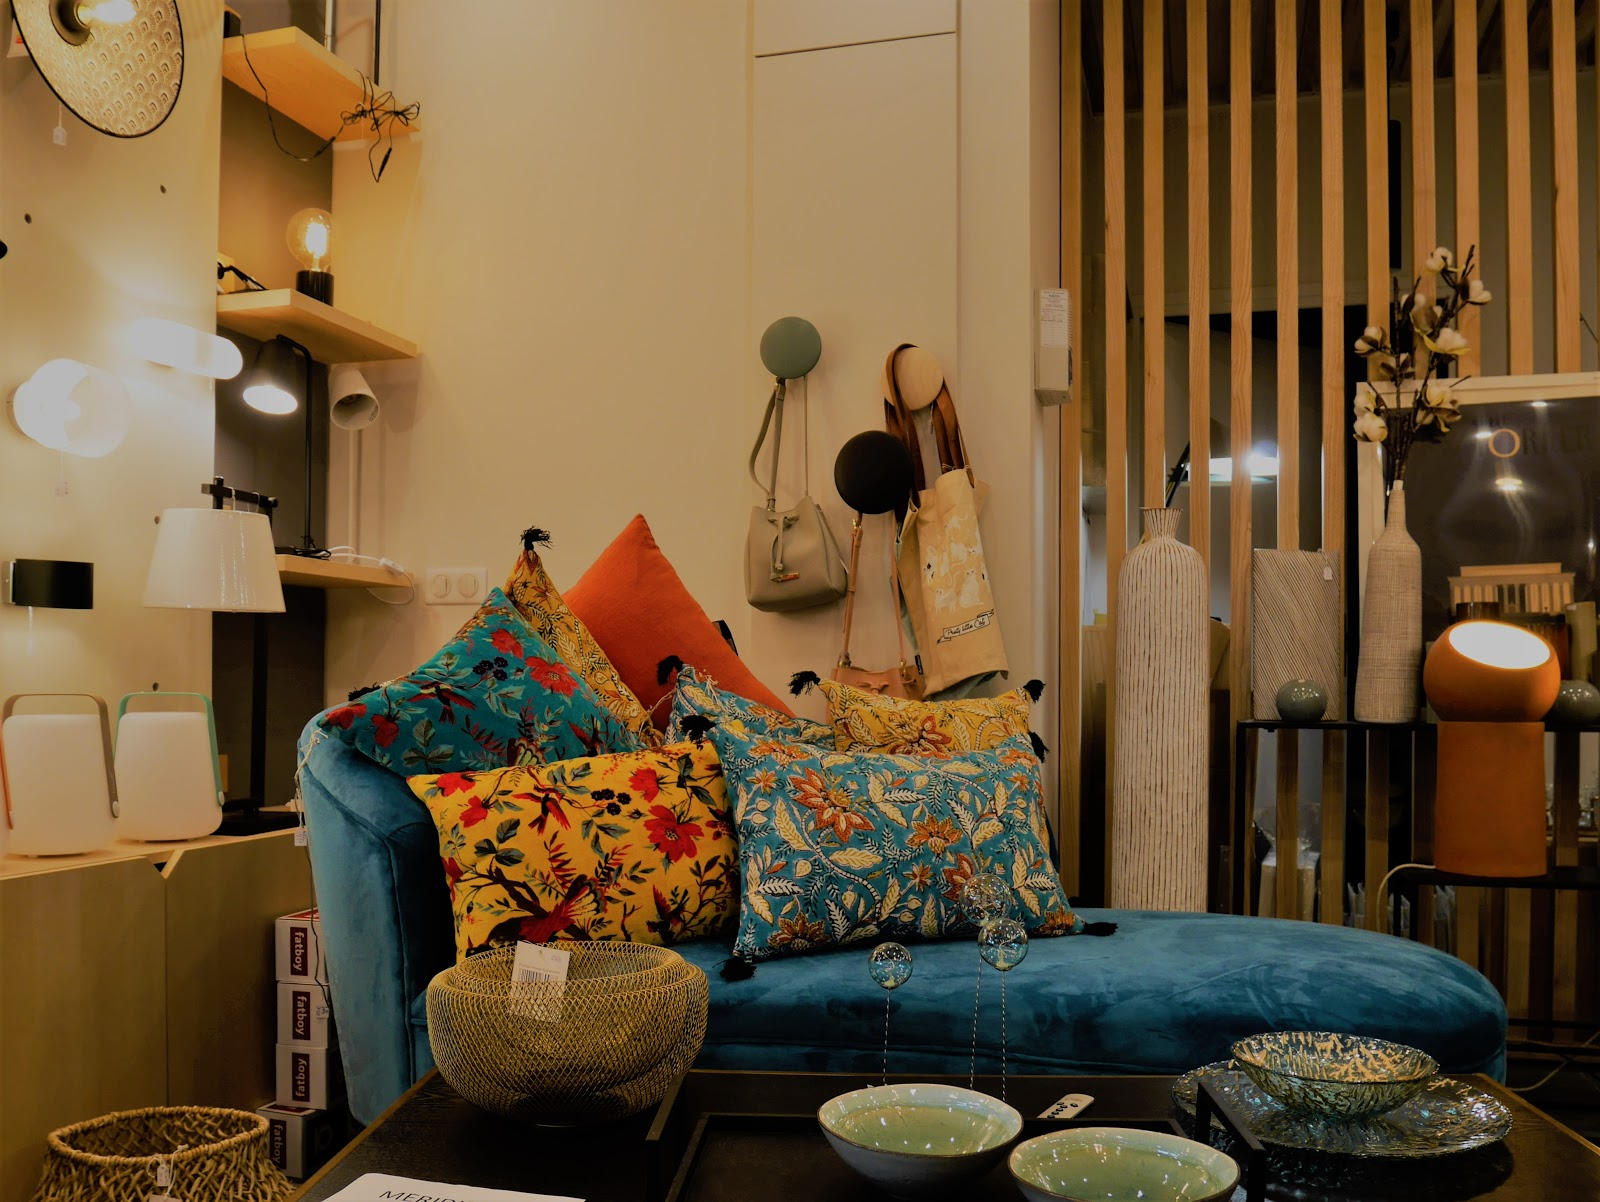 une-place-en-ville-boutique-de-decoration-d-interieur-le-plessis-robinson-